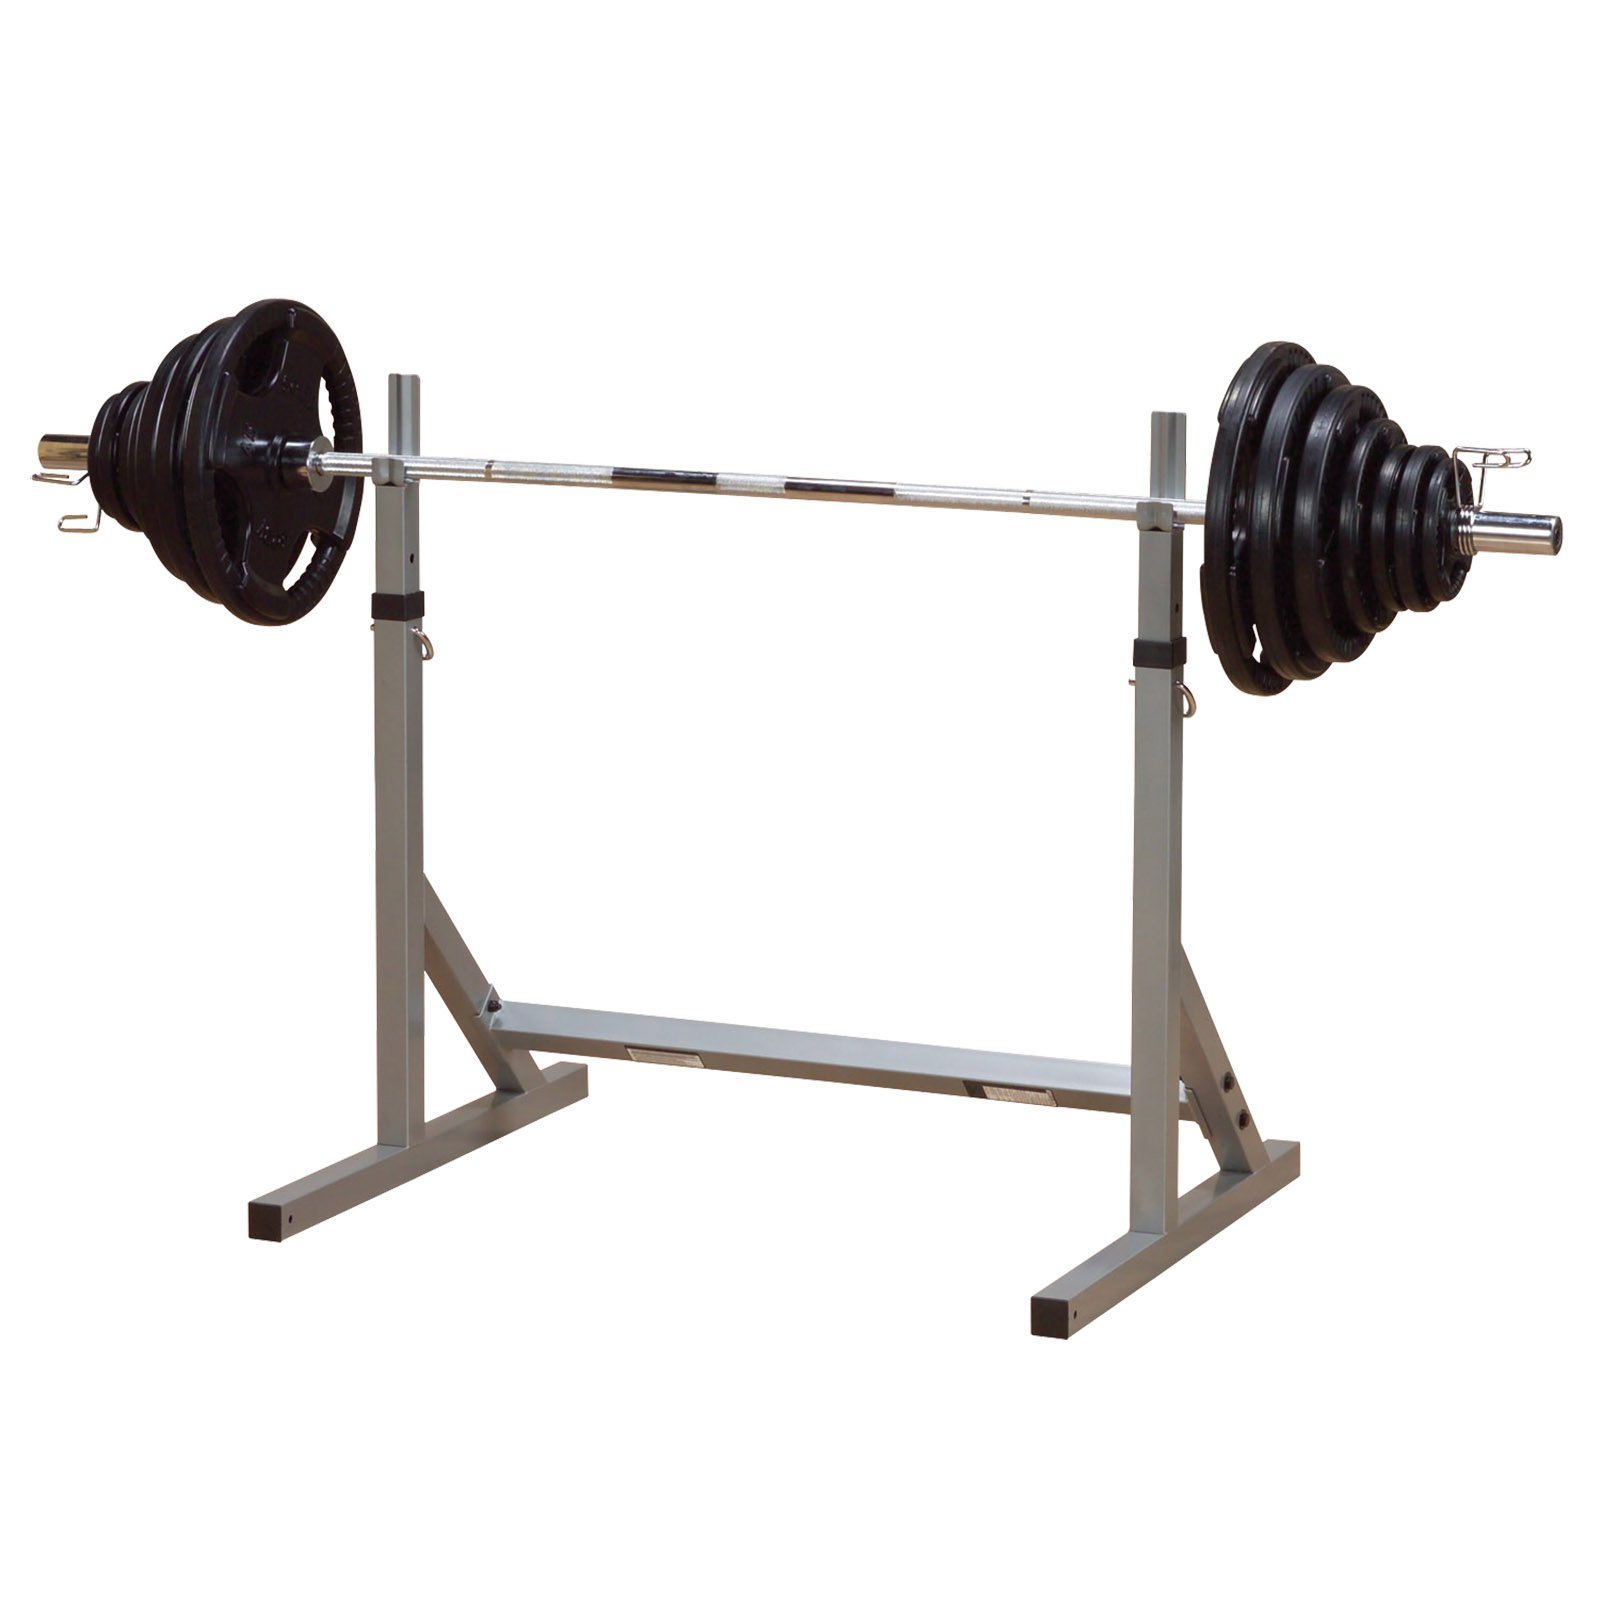 Squat and Bench Rack for Sale | Squat Racks Cheap | Squat Rack for Sale